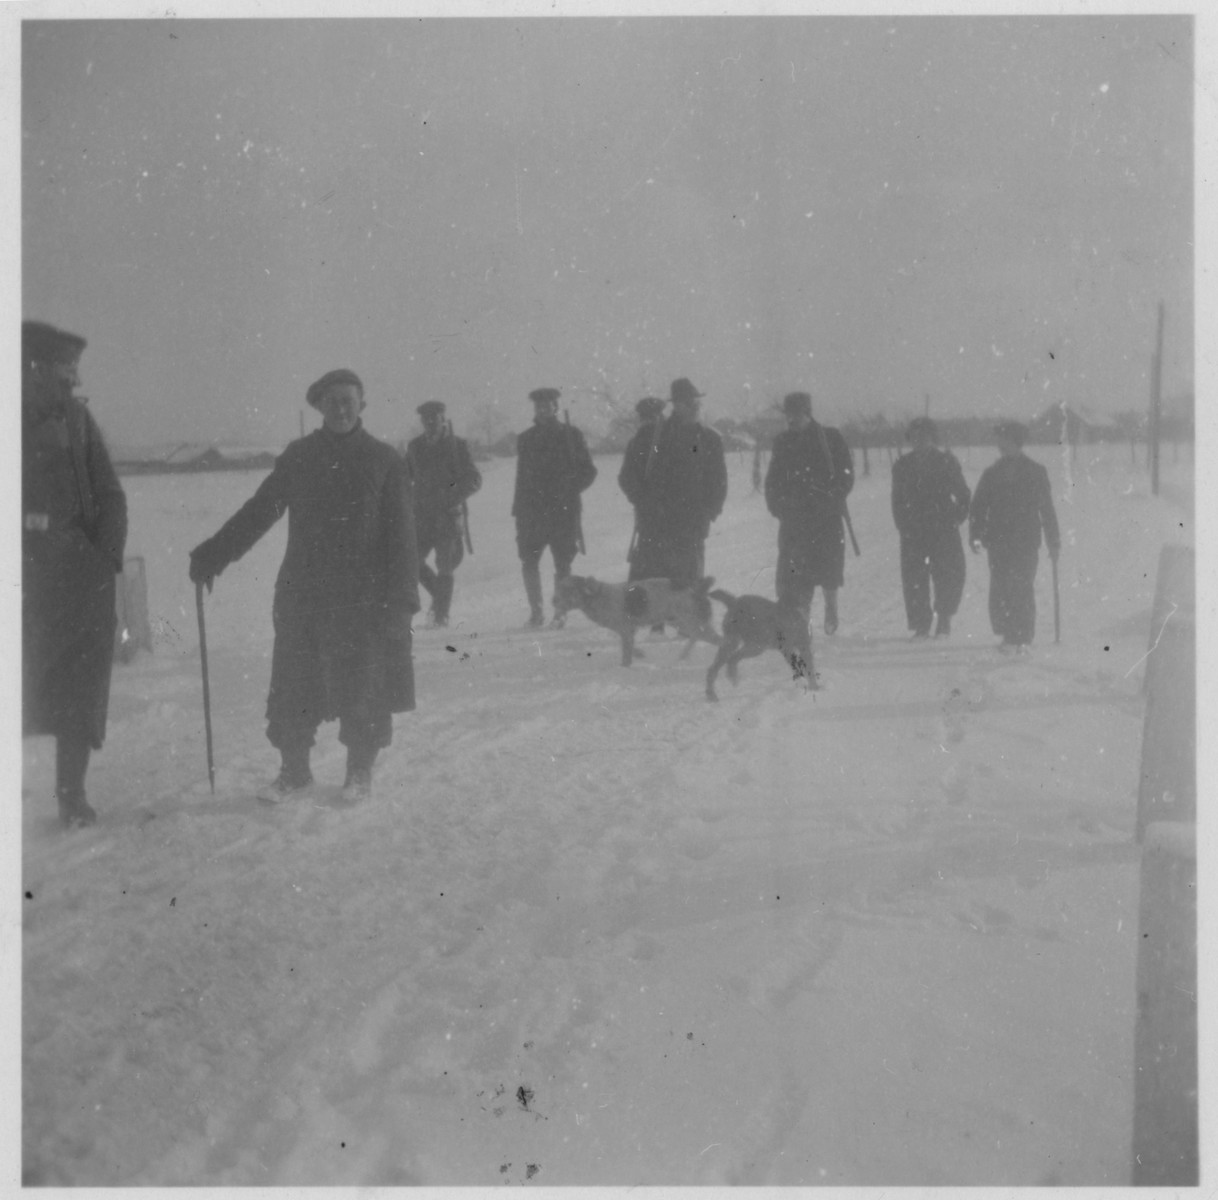 SS guard Anton SSchmeiler and other staff of the Lipa labor camp go on a winter hunting trip.